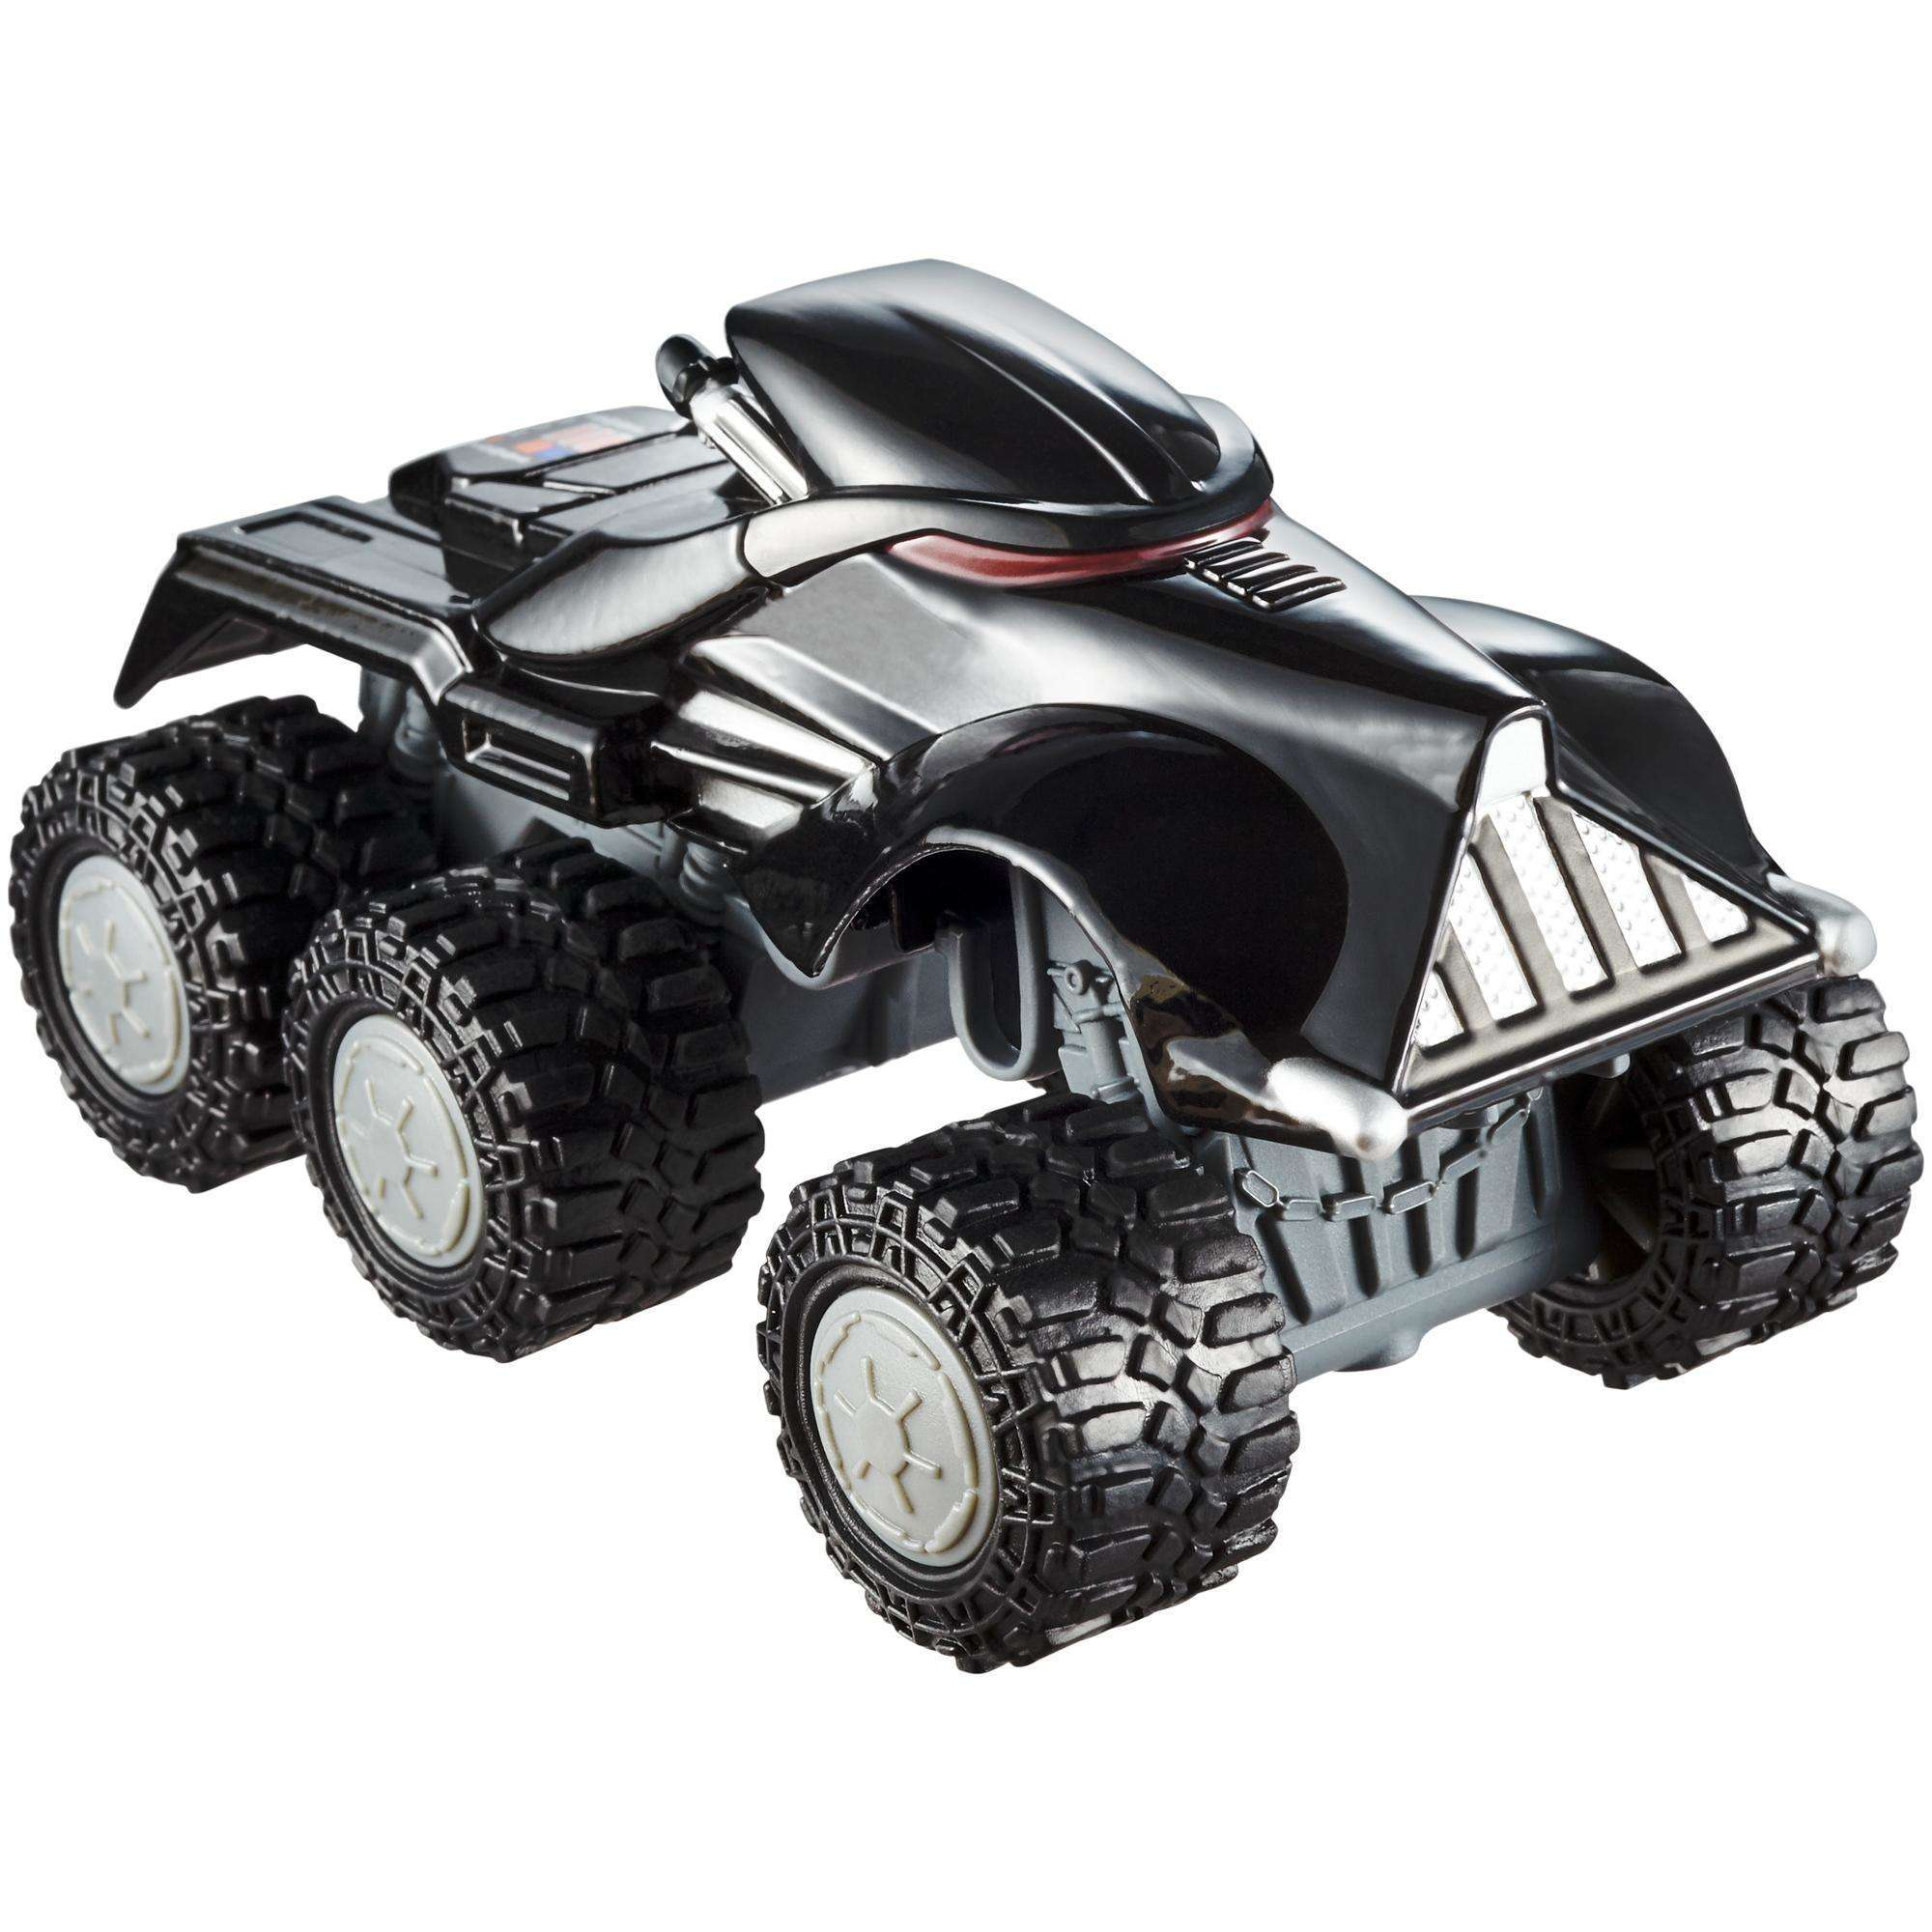 Hot Wheels Star Wars All-Terrain Darth Vader 1:43 Scale Vehicle by Mattel